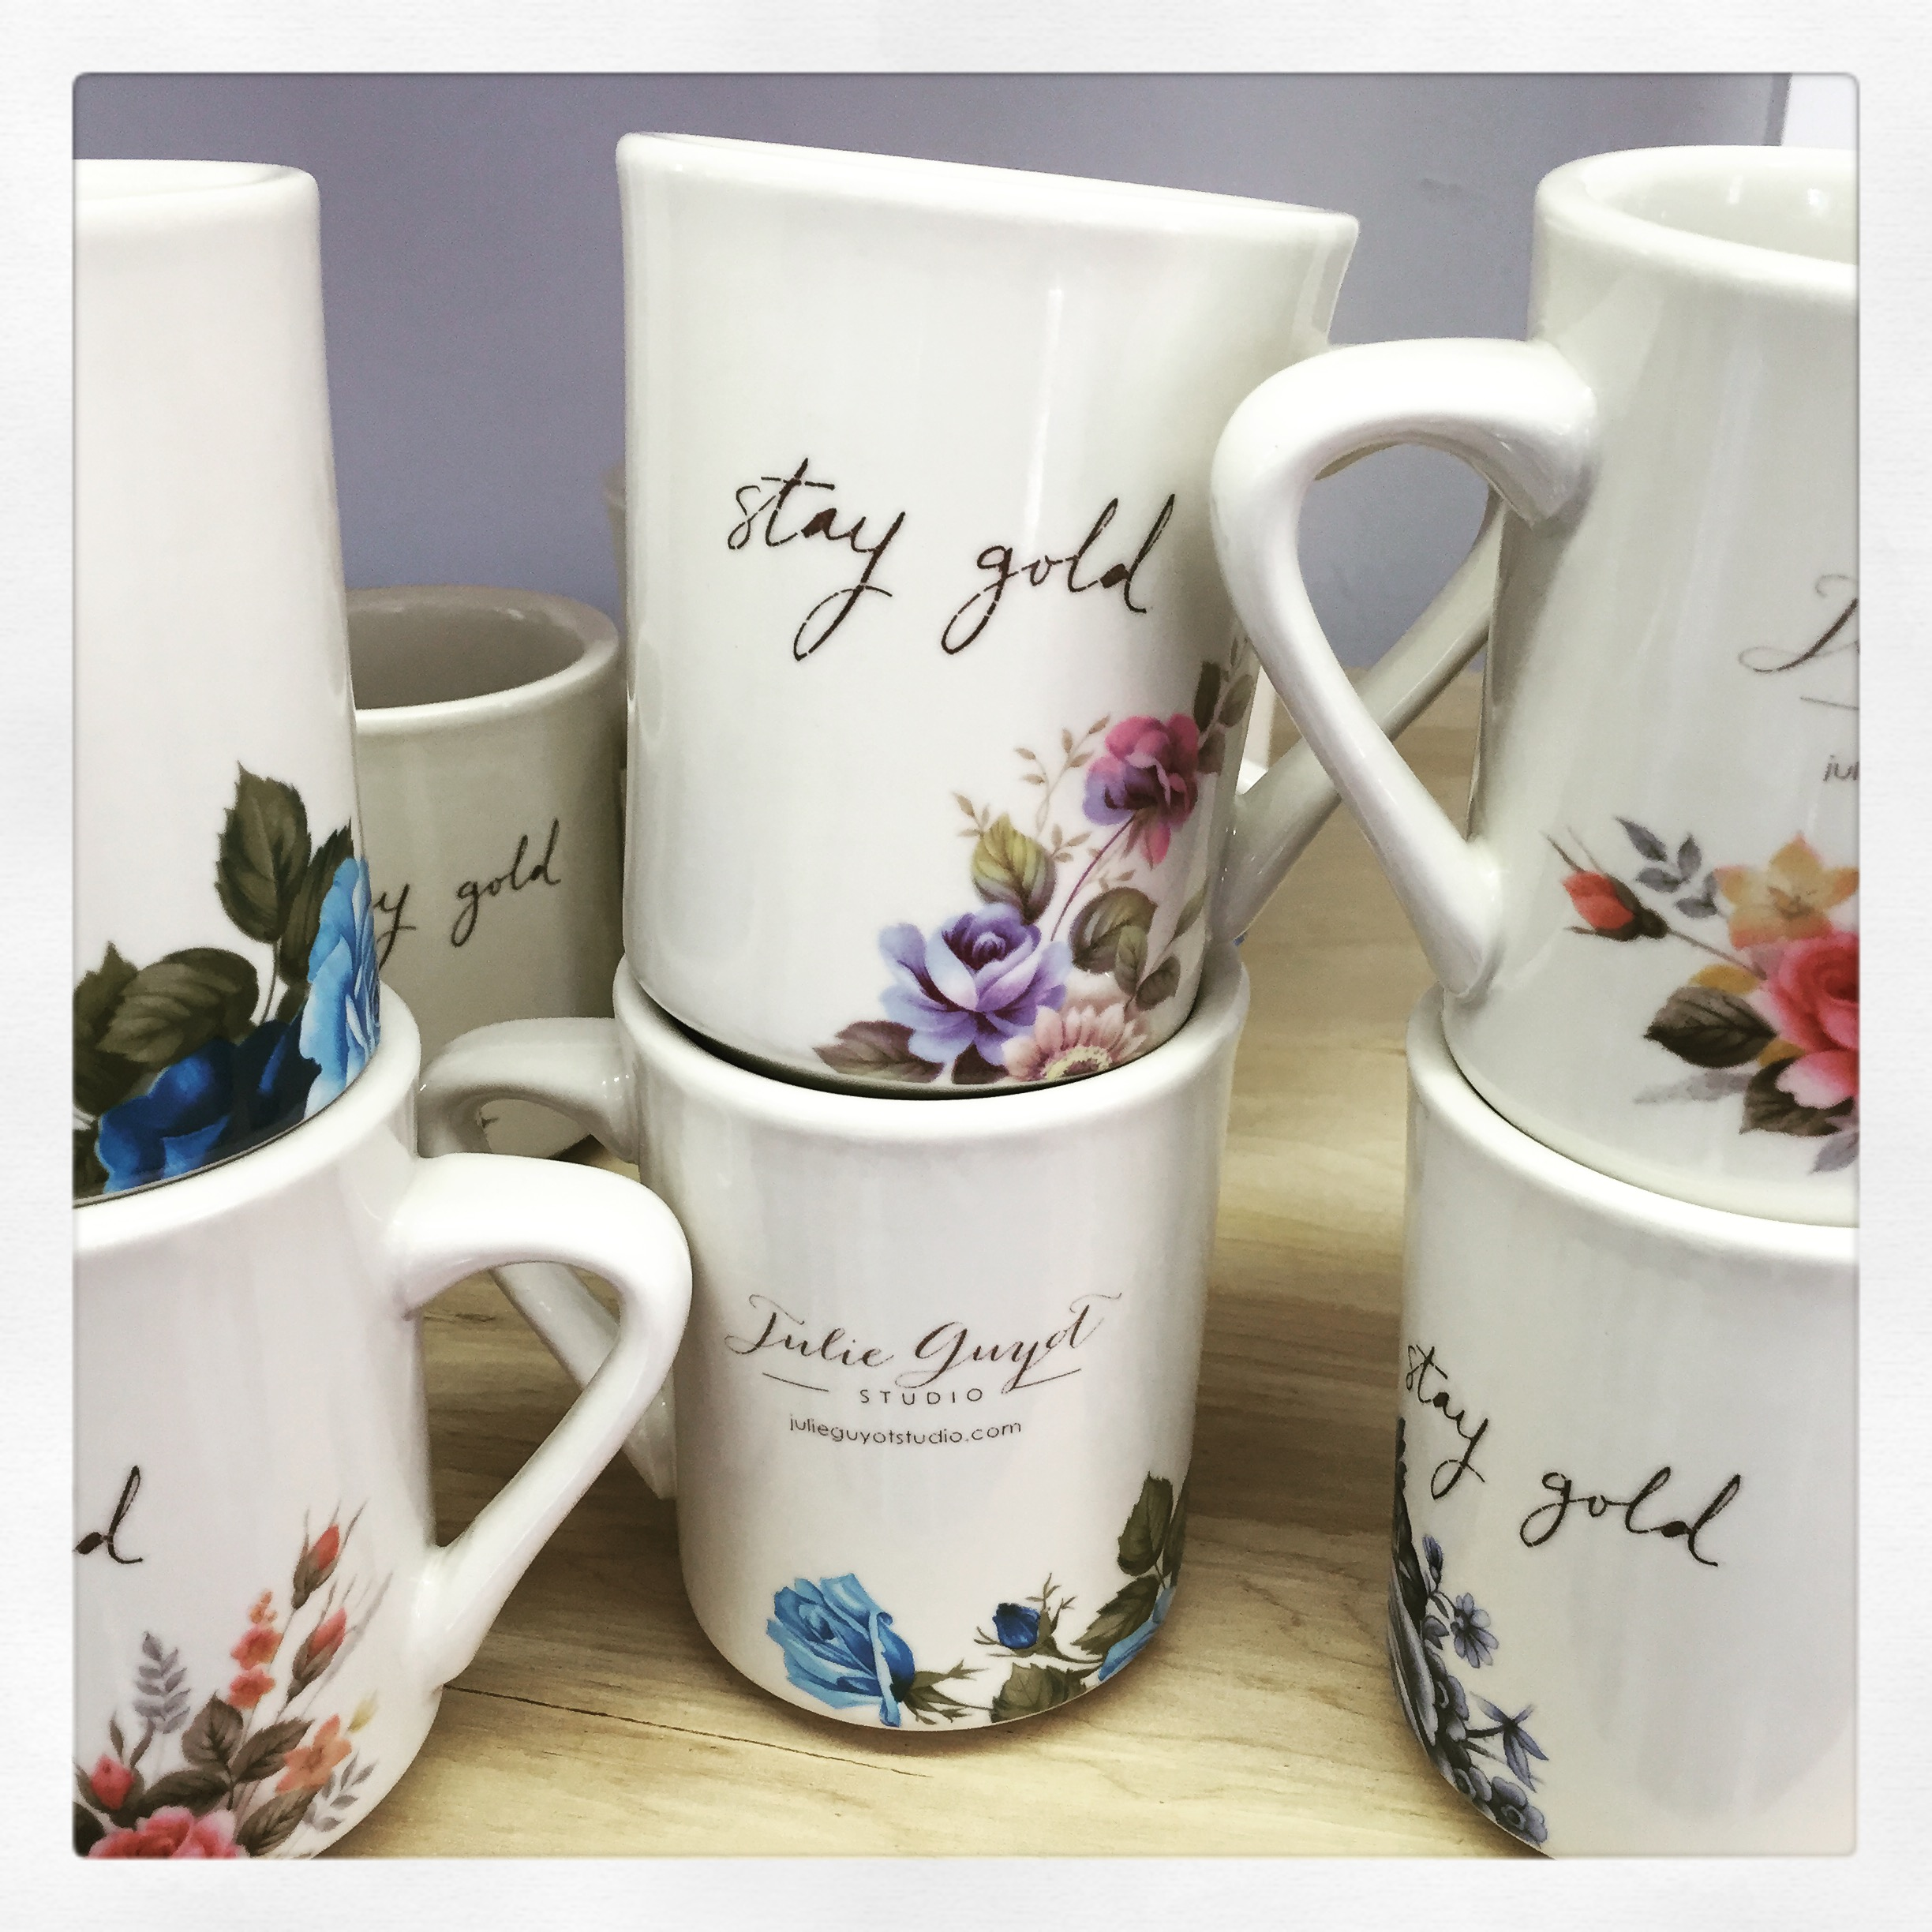 from Six Milk Cows-my not quite handmade line. re-purposed restaurant mugs with hand lettering and florals.